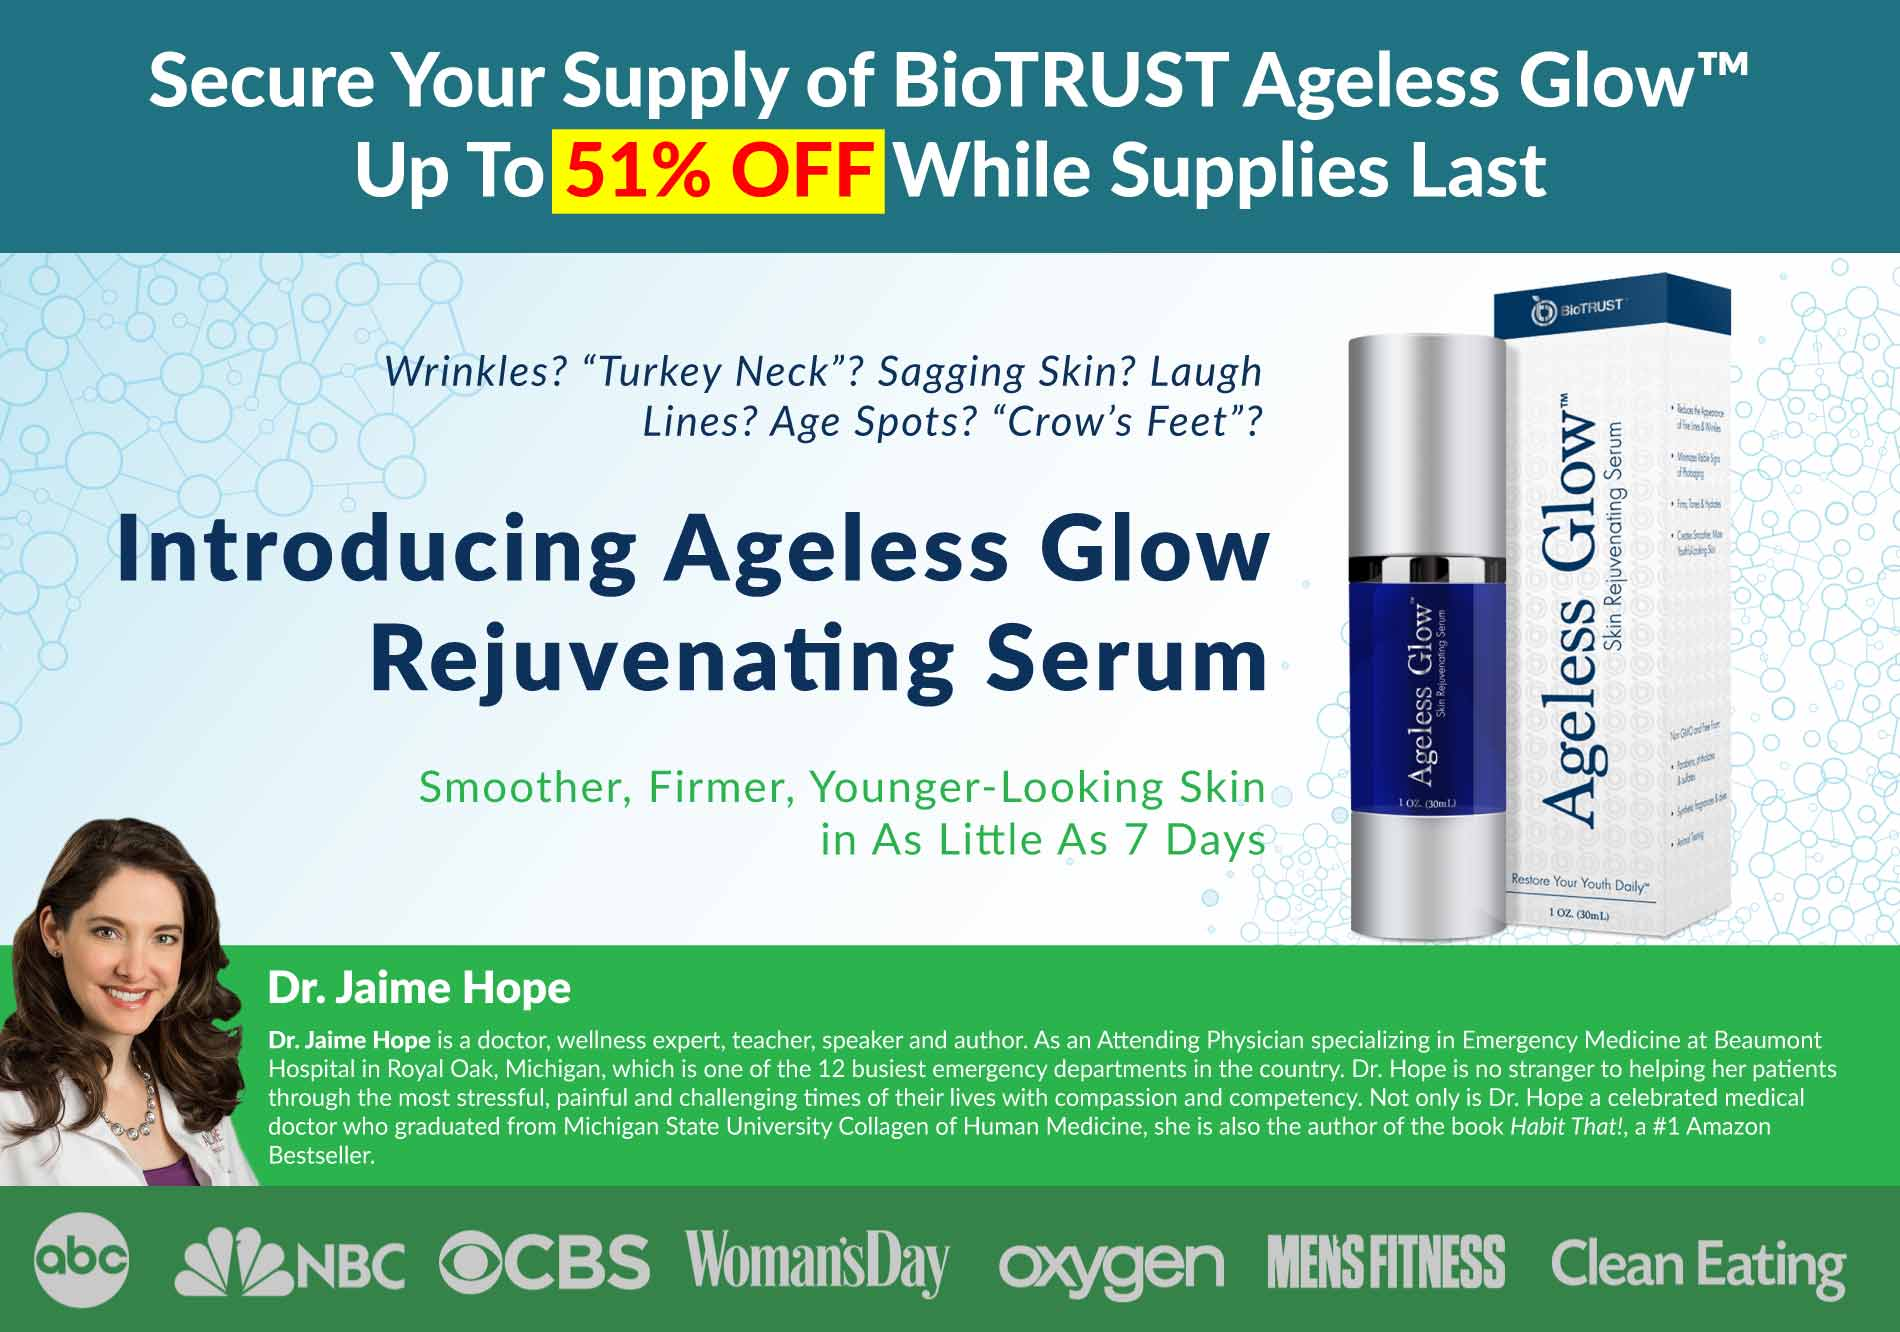 Ageless Glow 51% Off While Supplies Last